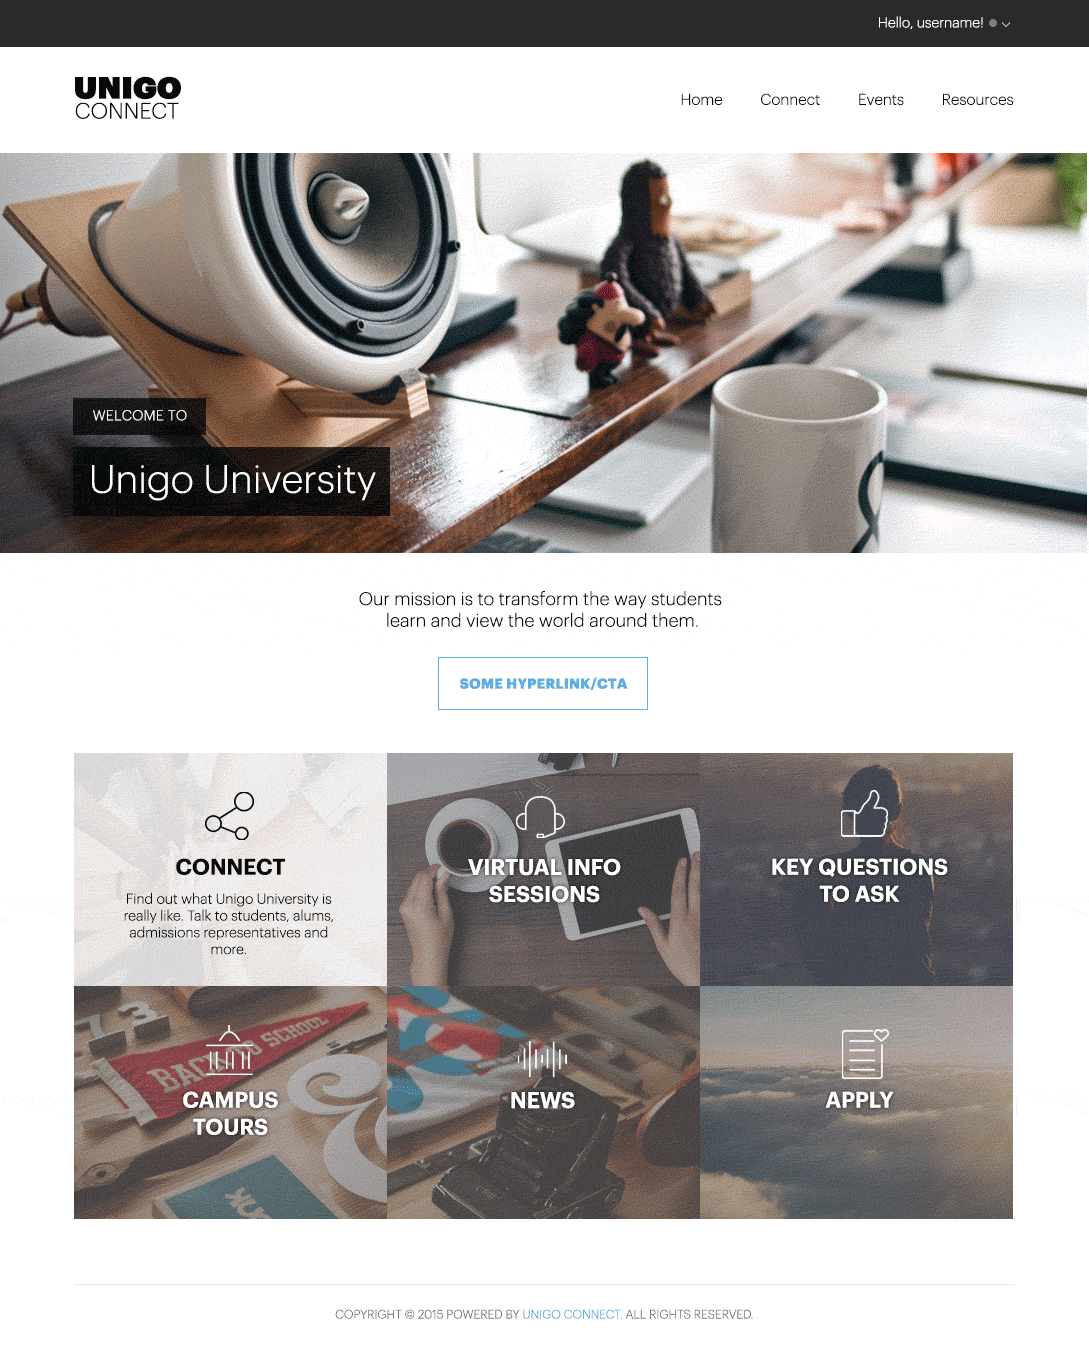 Unigo Connect Homepage concepts